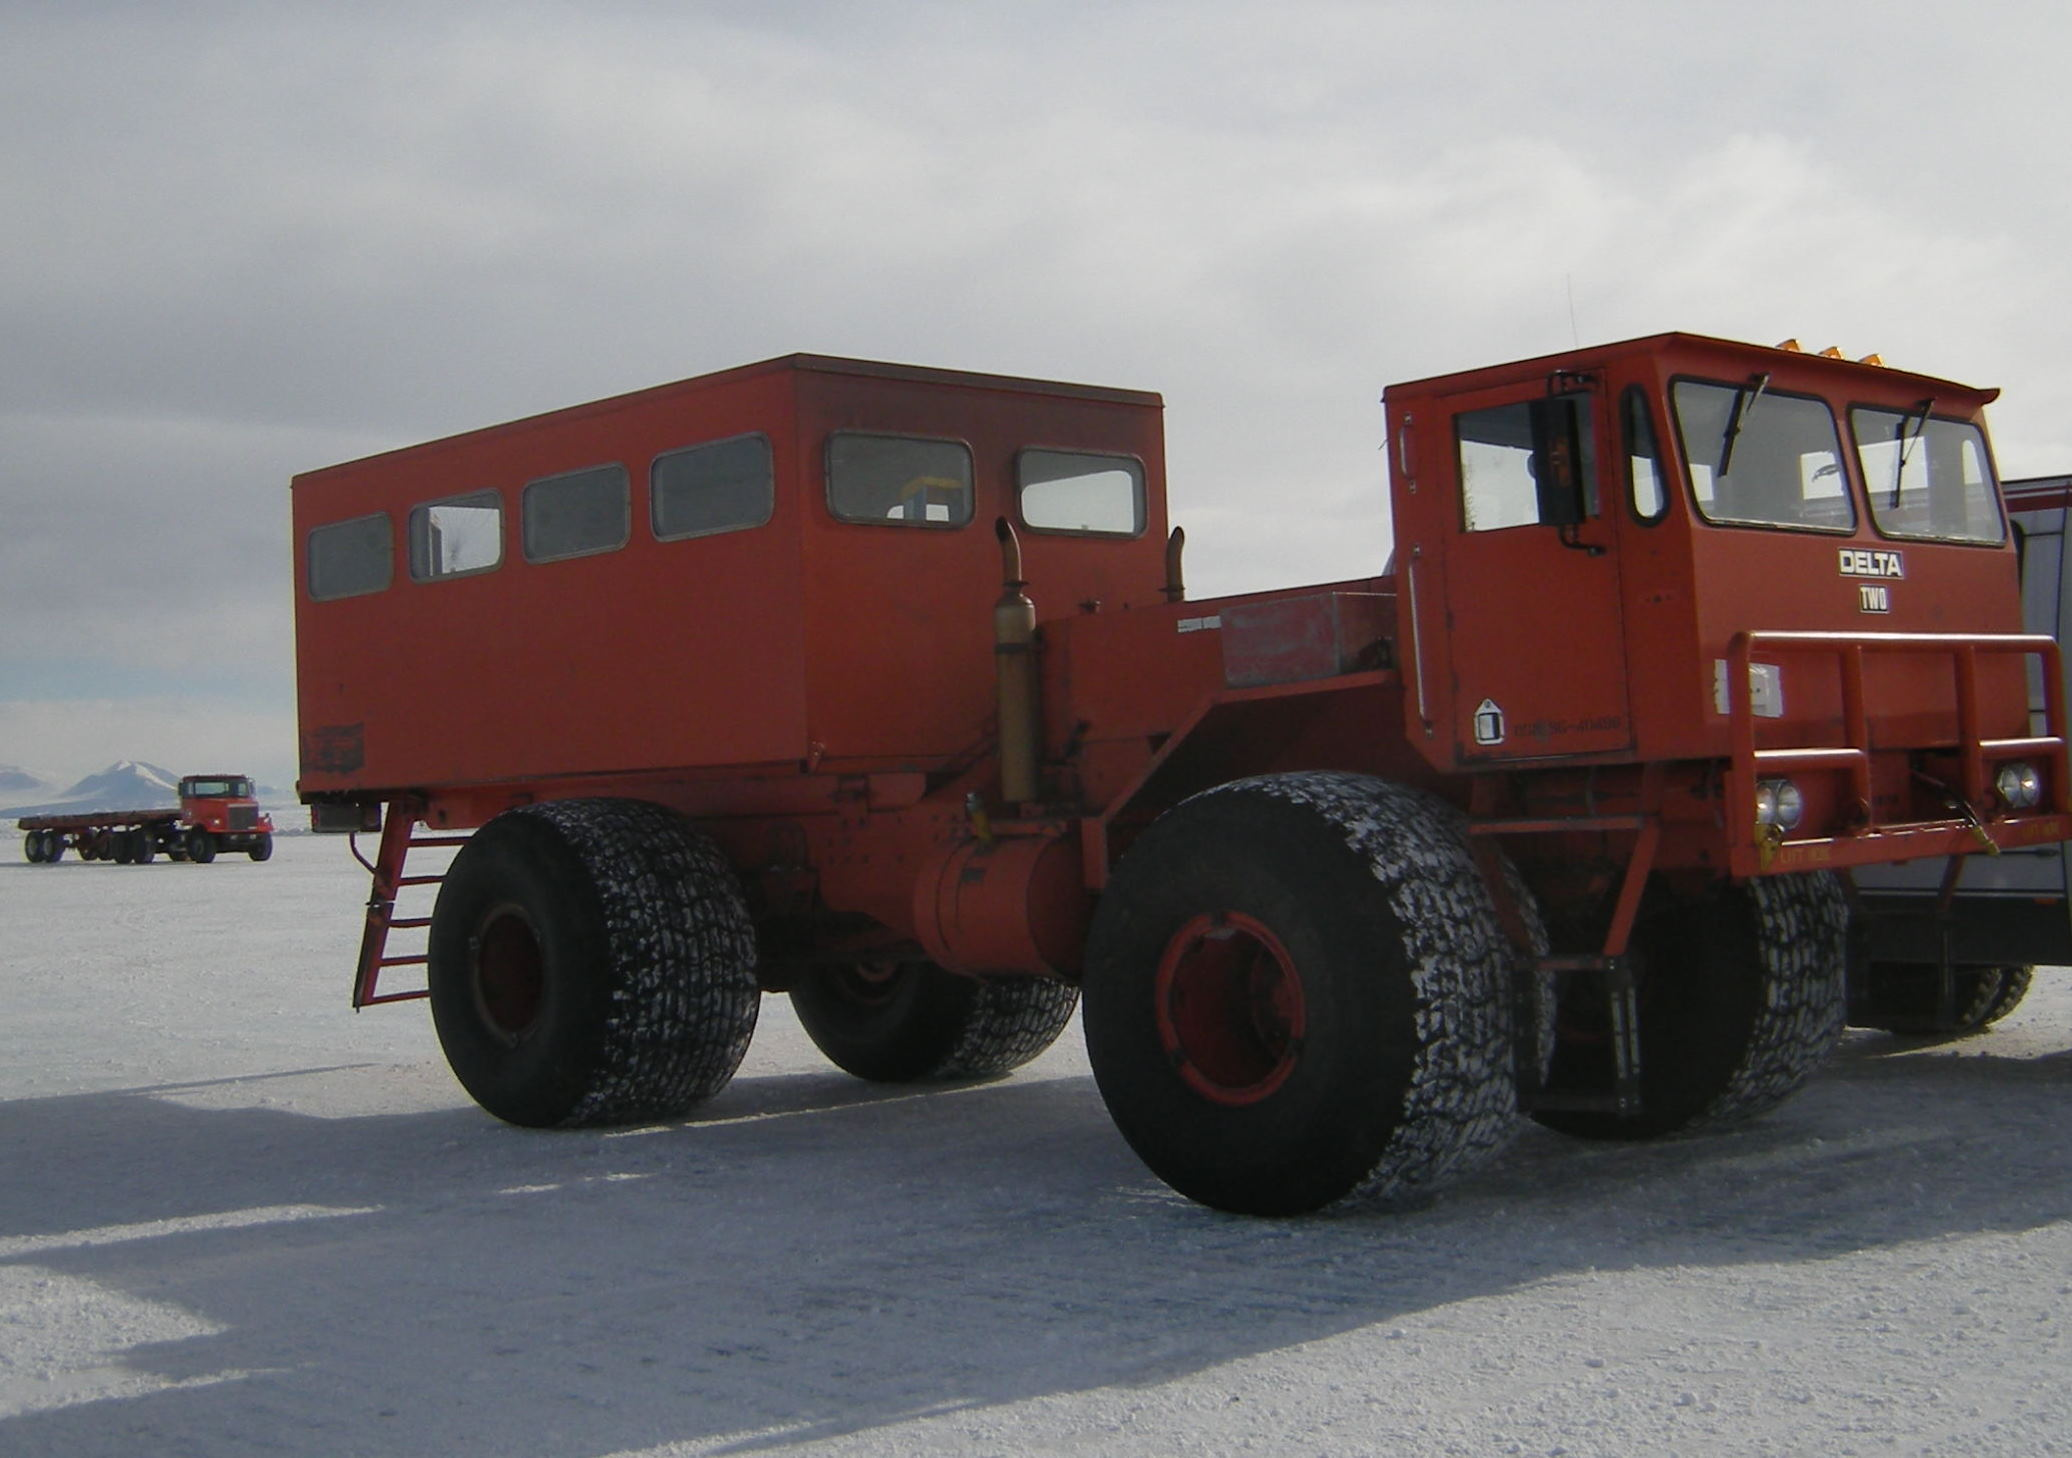 The Delta: large tire transport to McMurdo